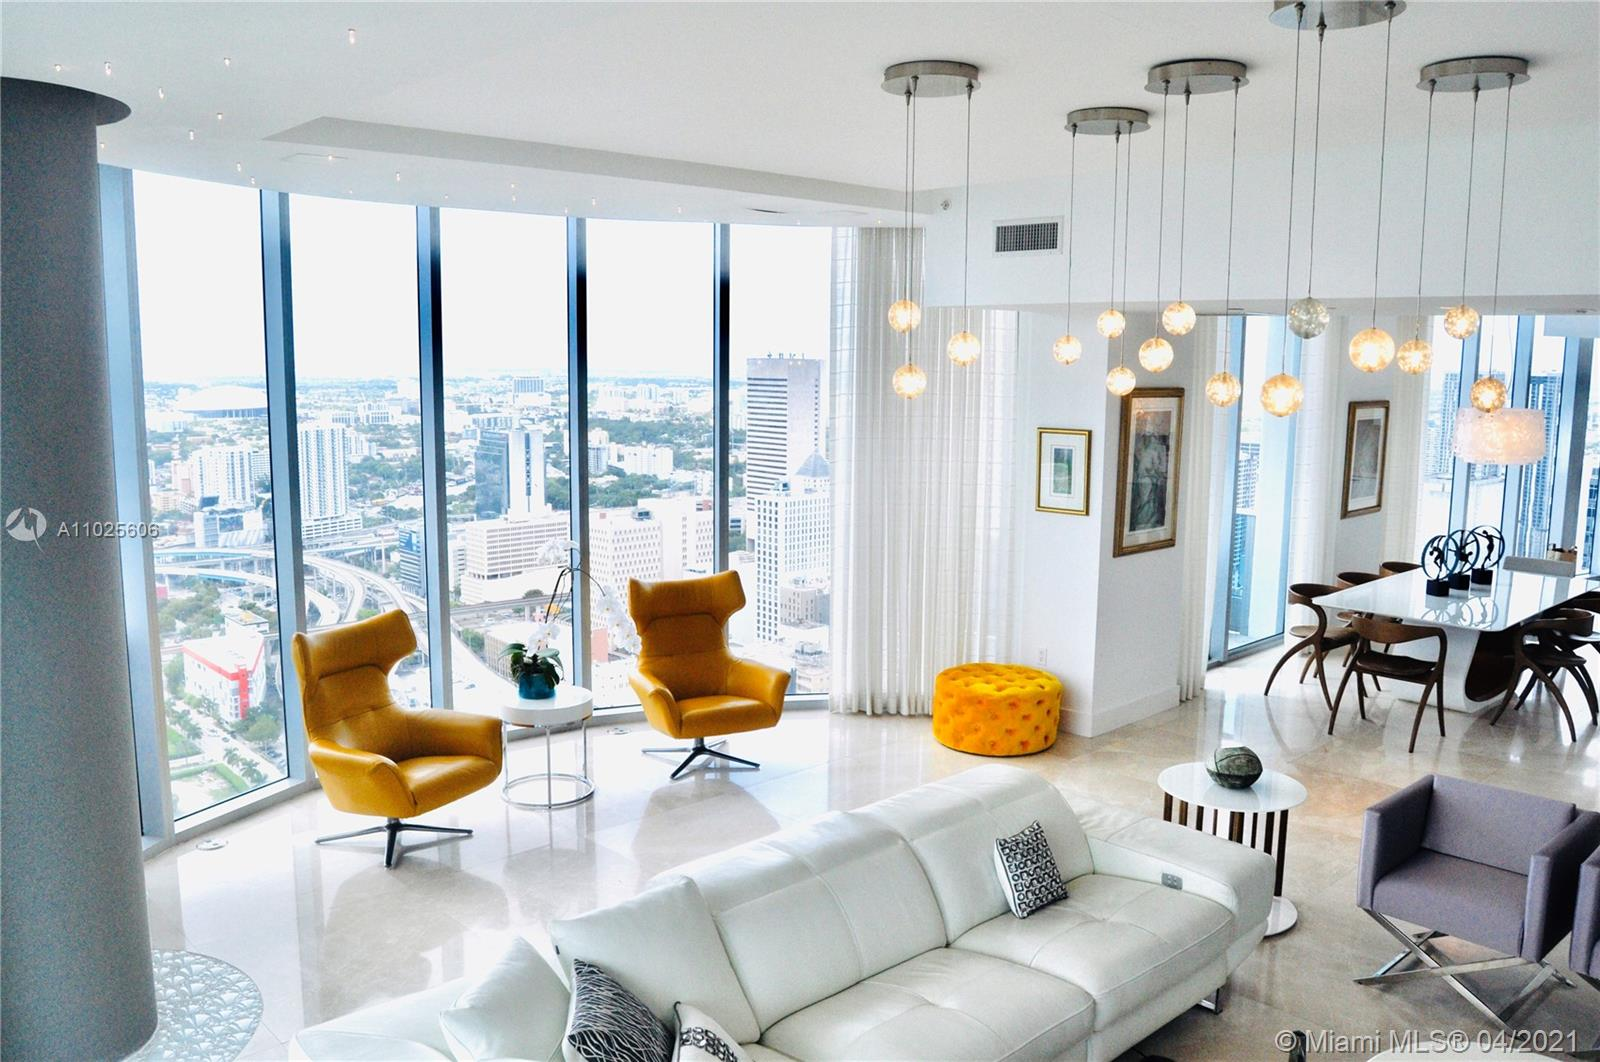 South East corner 52nd floor penthouse, unobstructed view, 2,457 ft2 livng area + 597 ft2 terrace, + 2 balconies, 4 garage pkng spaces, unobstructed views of bay, ocean, river and city! Across from Whole Foods and Silverspot Cinemas! Near banks, schools, Post office, restaurants, coffee shops, shopping centers, American Arena, Brickell City Center, and hotels! Short drive to Miami Beach, airport, golf courses, Marlins Park. Unit has marble floors, electrical window treatments, wind resistant windows, white kitchen cabinets, standard storage space + additional private storage room. Enjoy residents and hotel amenities such as 5 pools, gym, spa, yoga room, 24/7 concierge valet parking for guests and extra cars, 24 hours security, 2 restaurants including Zuma, in room dining, and more!